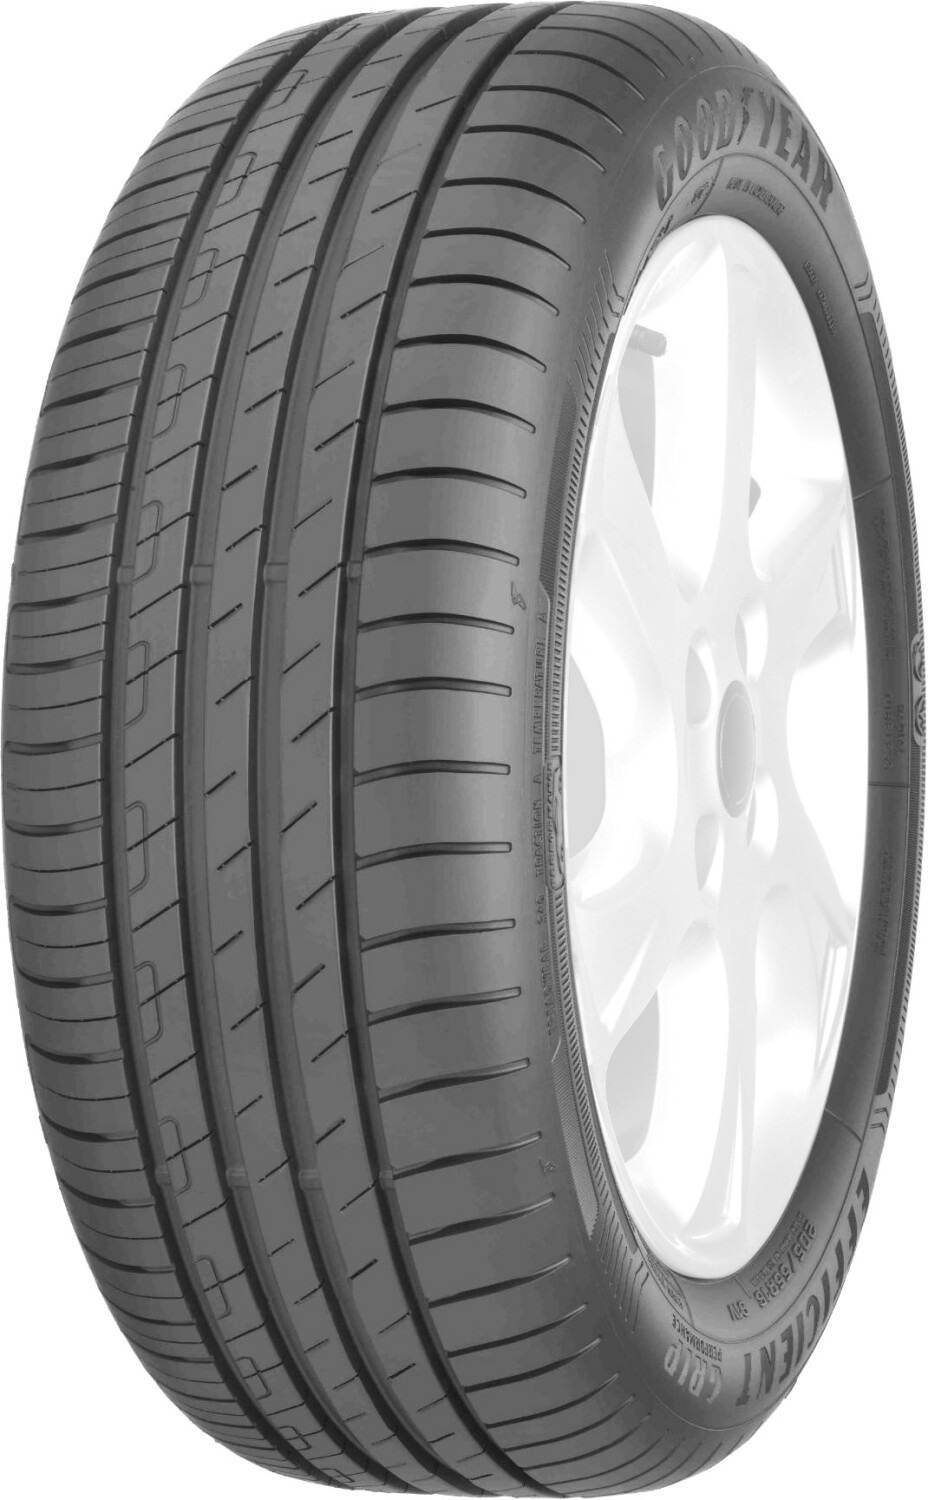 Goodyear EfficientGrip Performance 205/55 R16 91V B,A,68